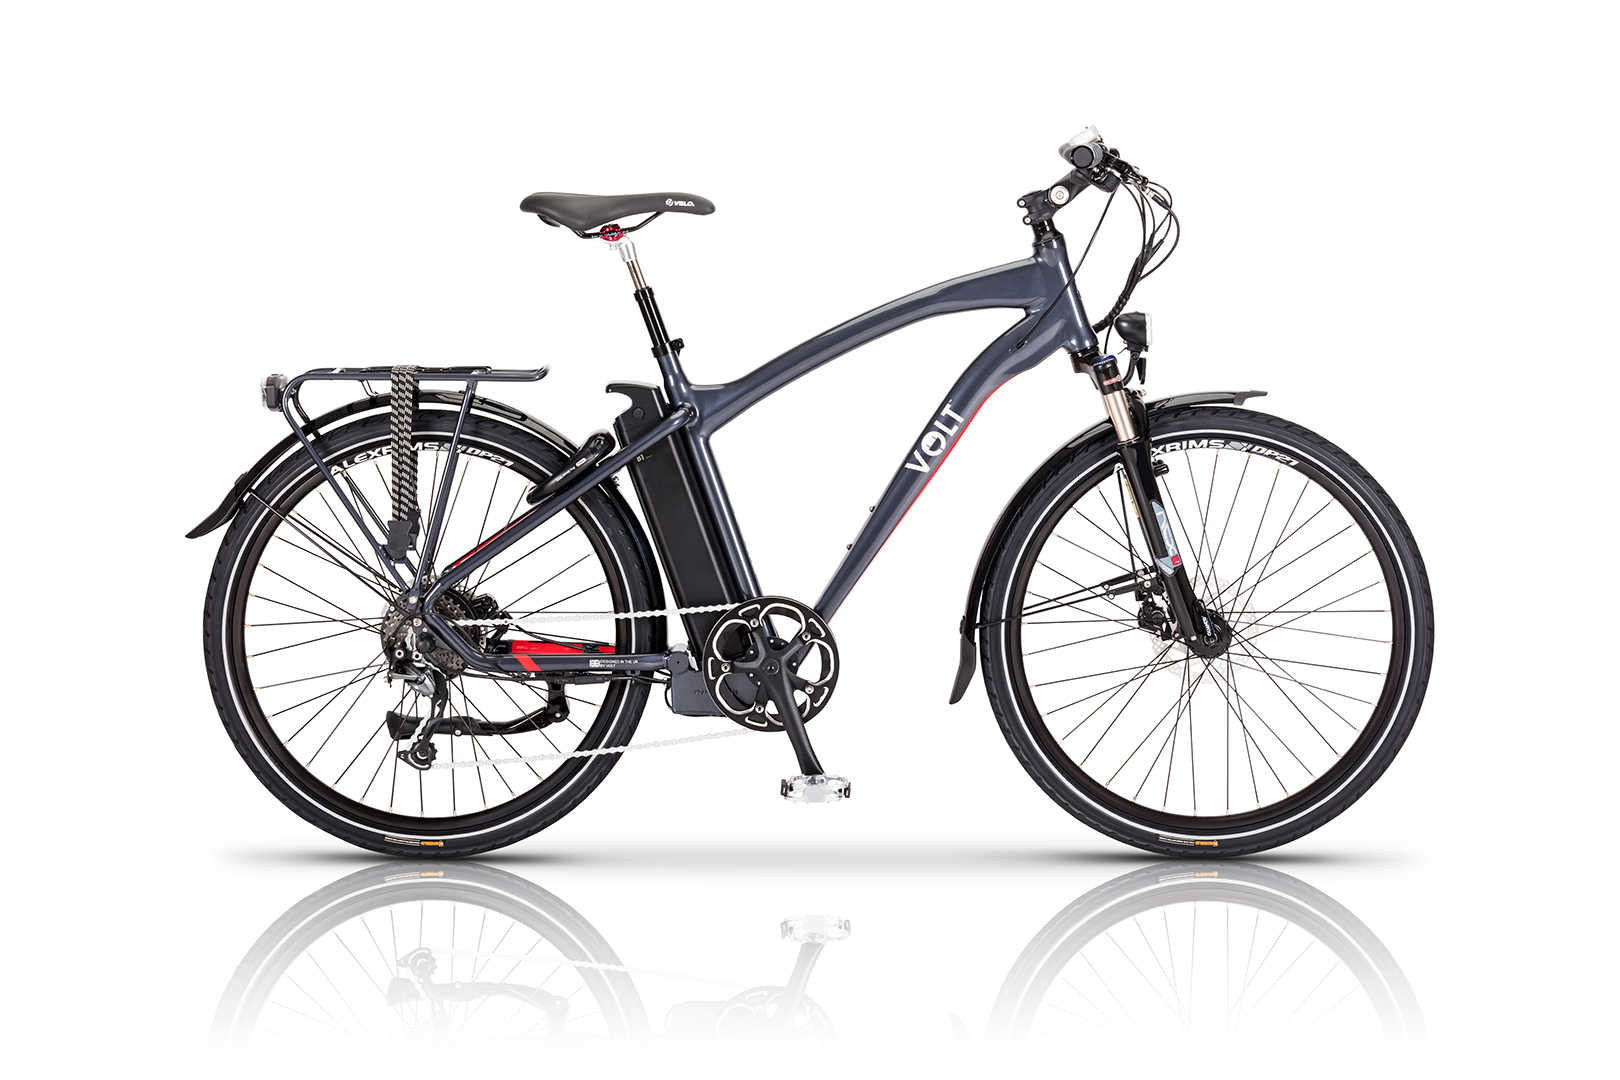 Pulse Hybrid e-bike from Volt